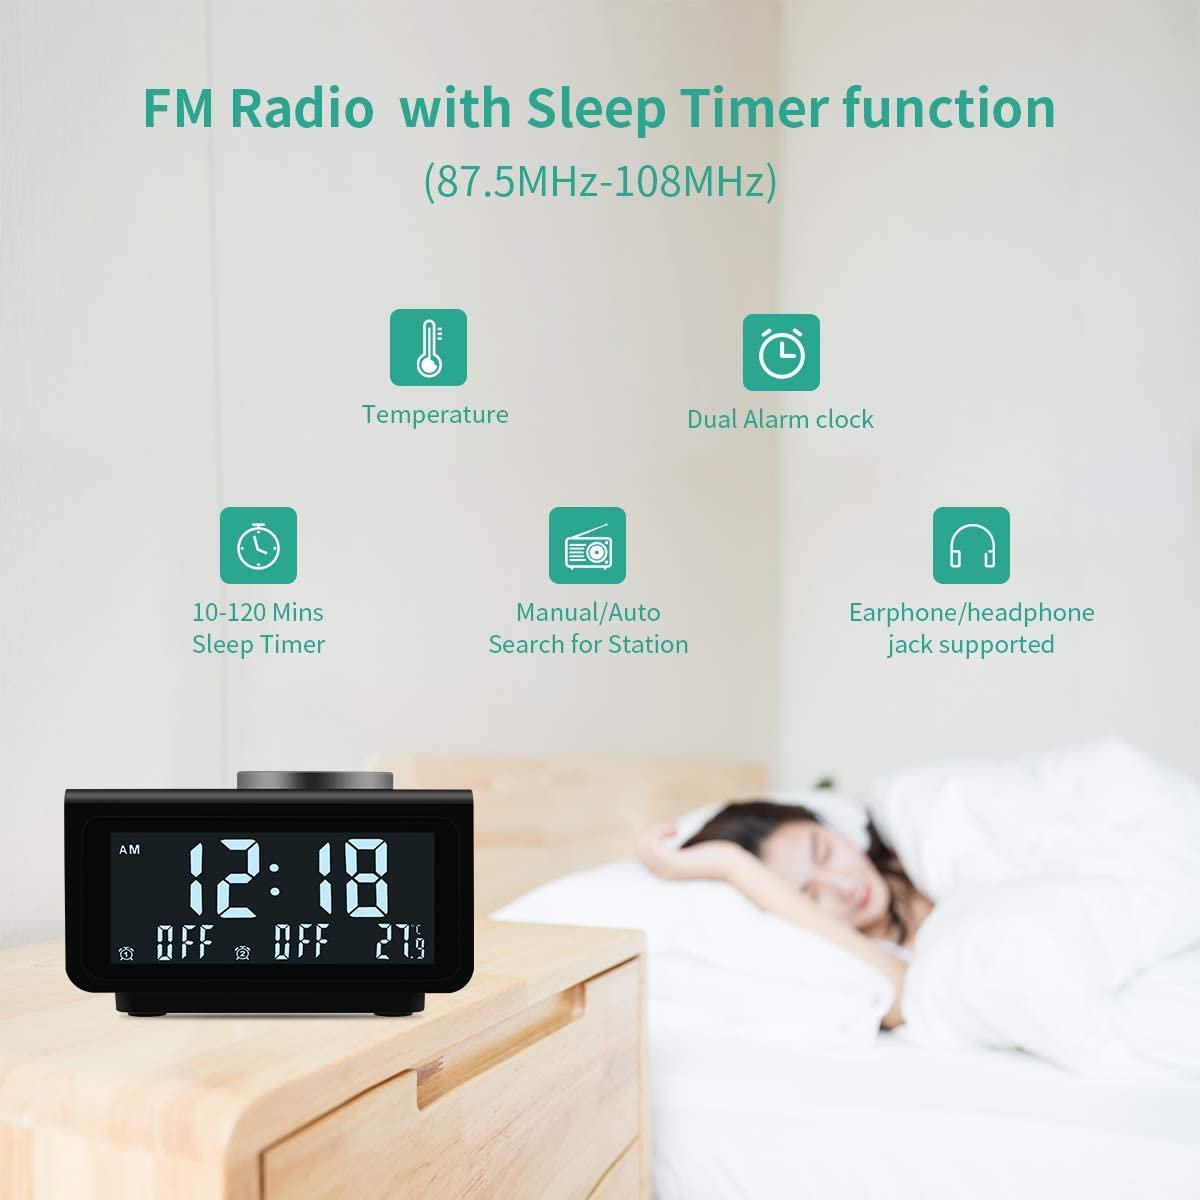 Upgraded Alarm Clock Radio, Digital Alarm Clock with FM Radio, Dual USB Charging Ports, Dual Alarms with 7 Alarm Sounds, Snooze, 5 Level Brightness Dimmer, Temperature Display, for Bedroom